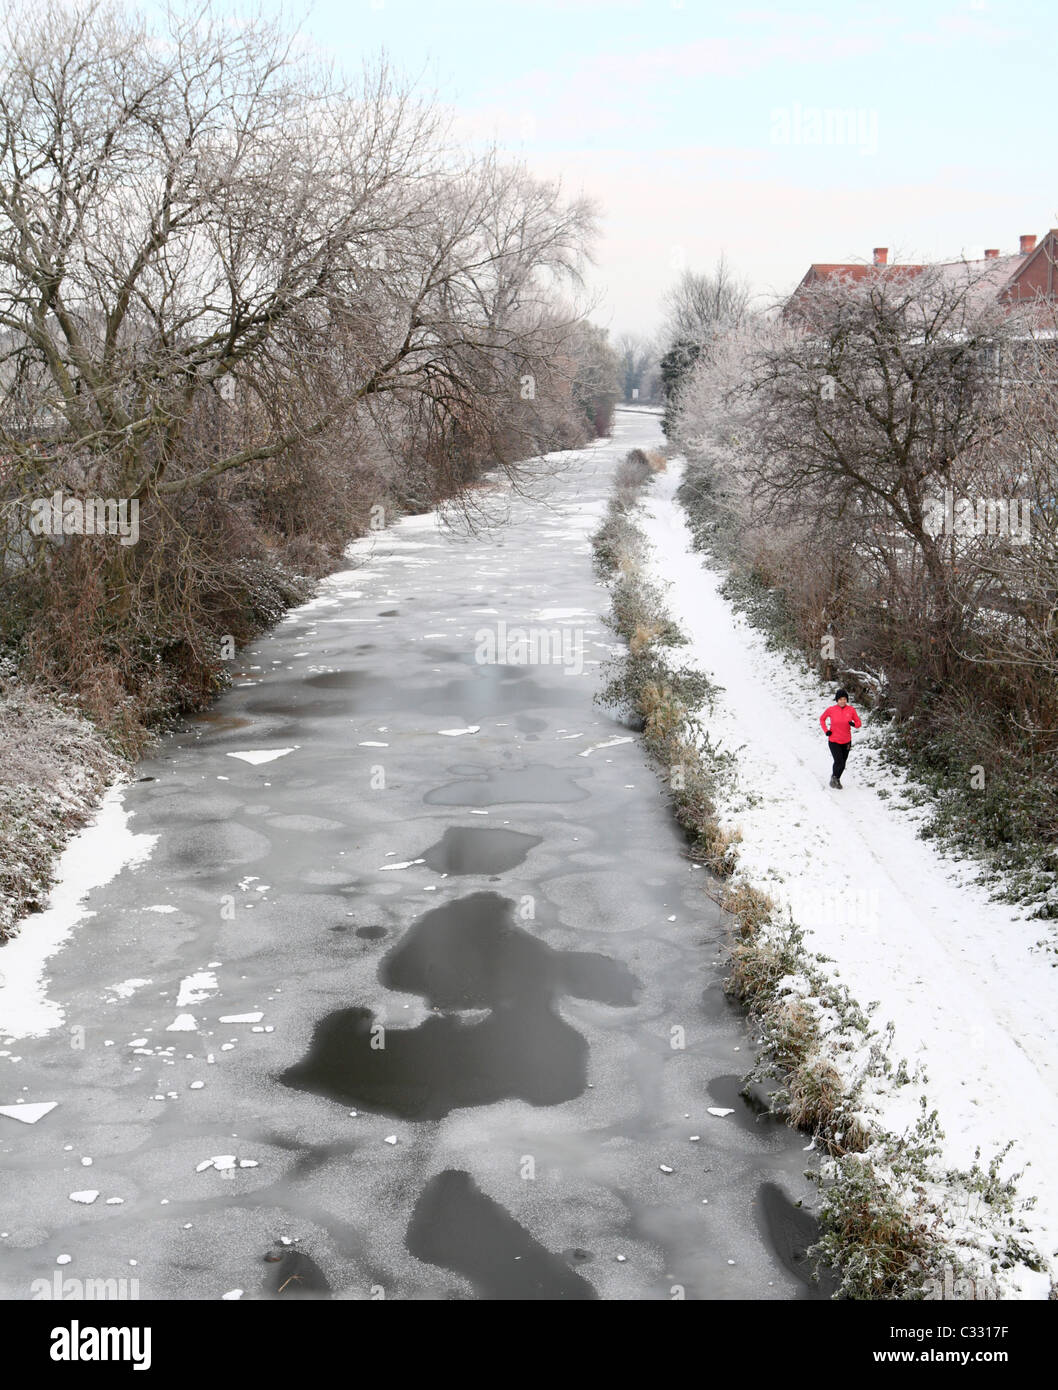 Frozen canal with runner - Stock Image